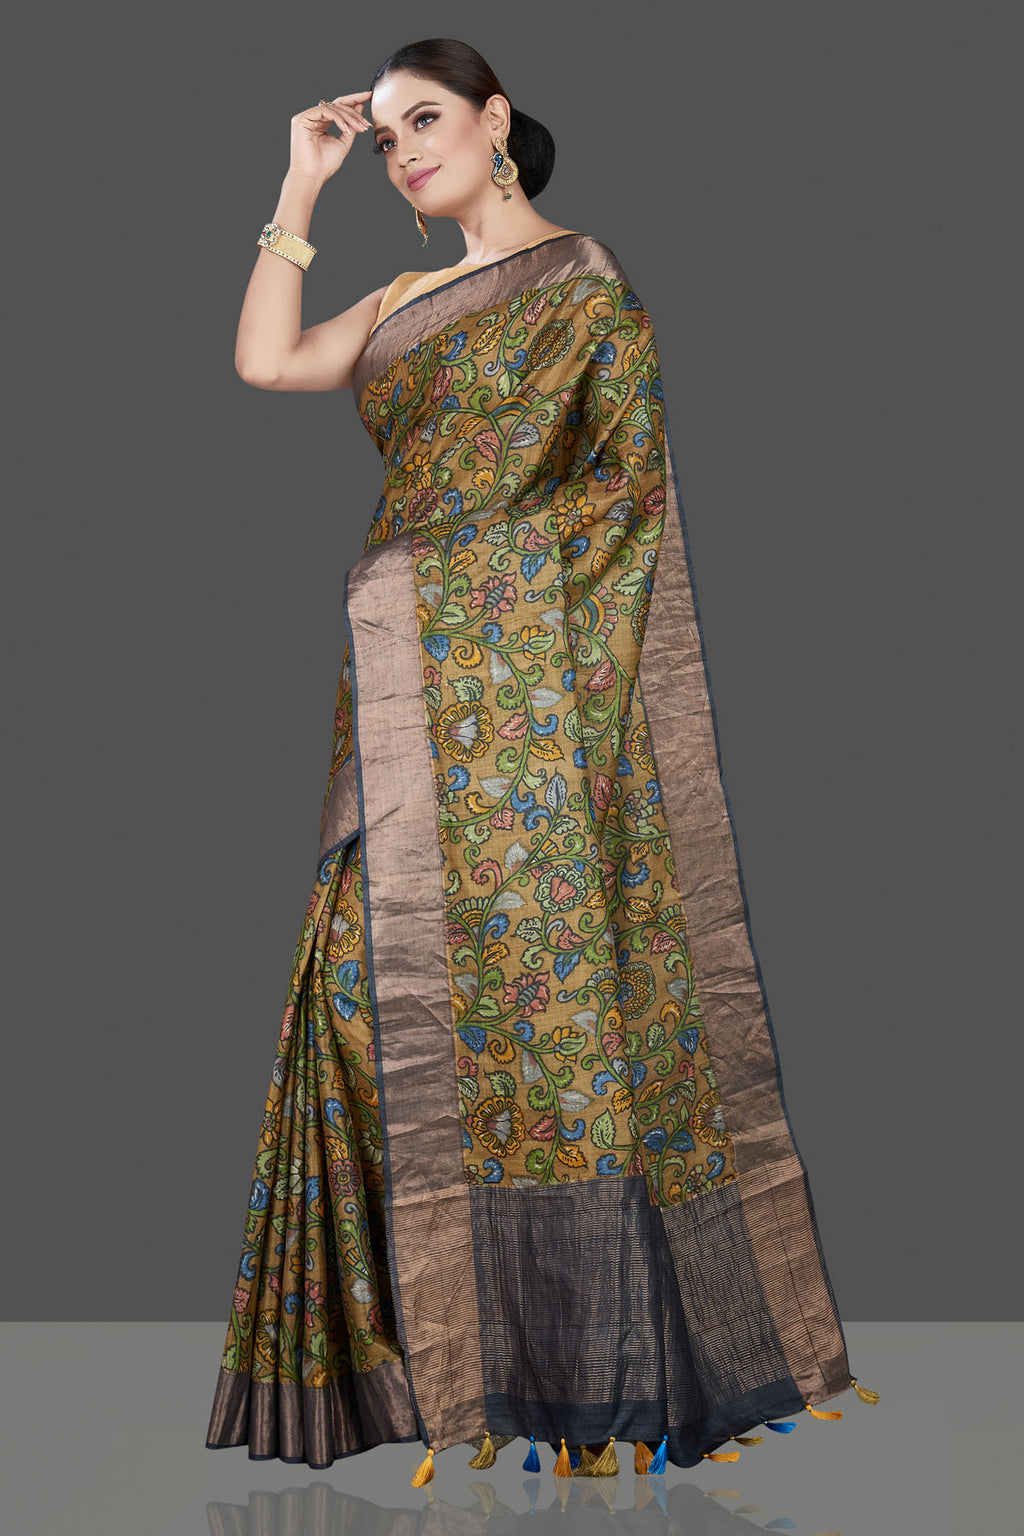 Buy stunning olive green Kalamkari print tussar silk saree online in USA with zari border. Be the talk of the occasion in exquisite designer sarees, pure silk sarees, tussar saris, embroidered sarees, handloom sarees from Pure Elegance Indian fashion store in USA.-full view